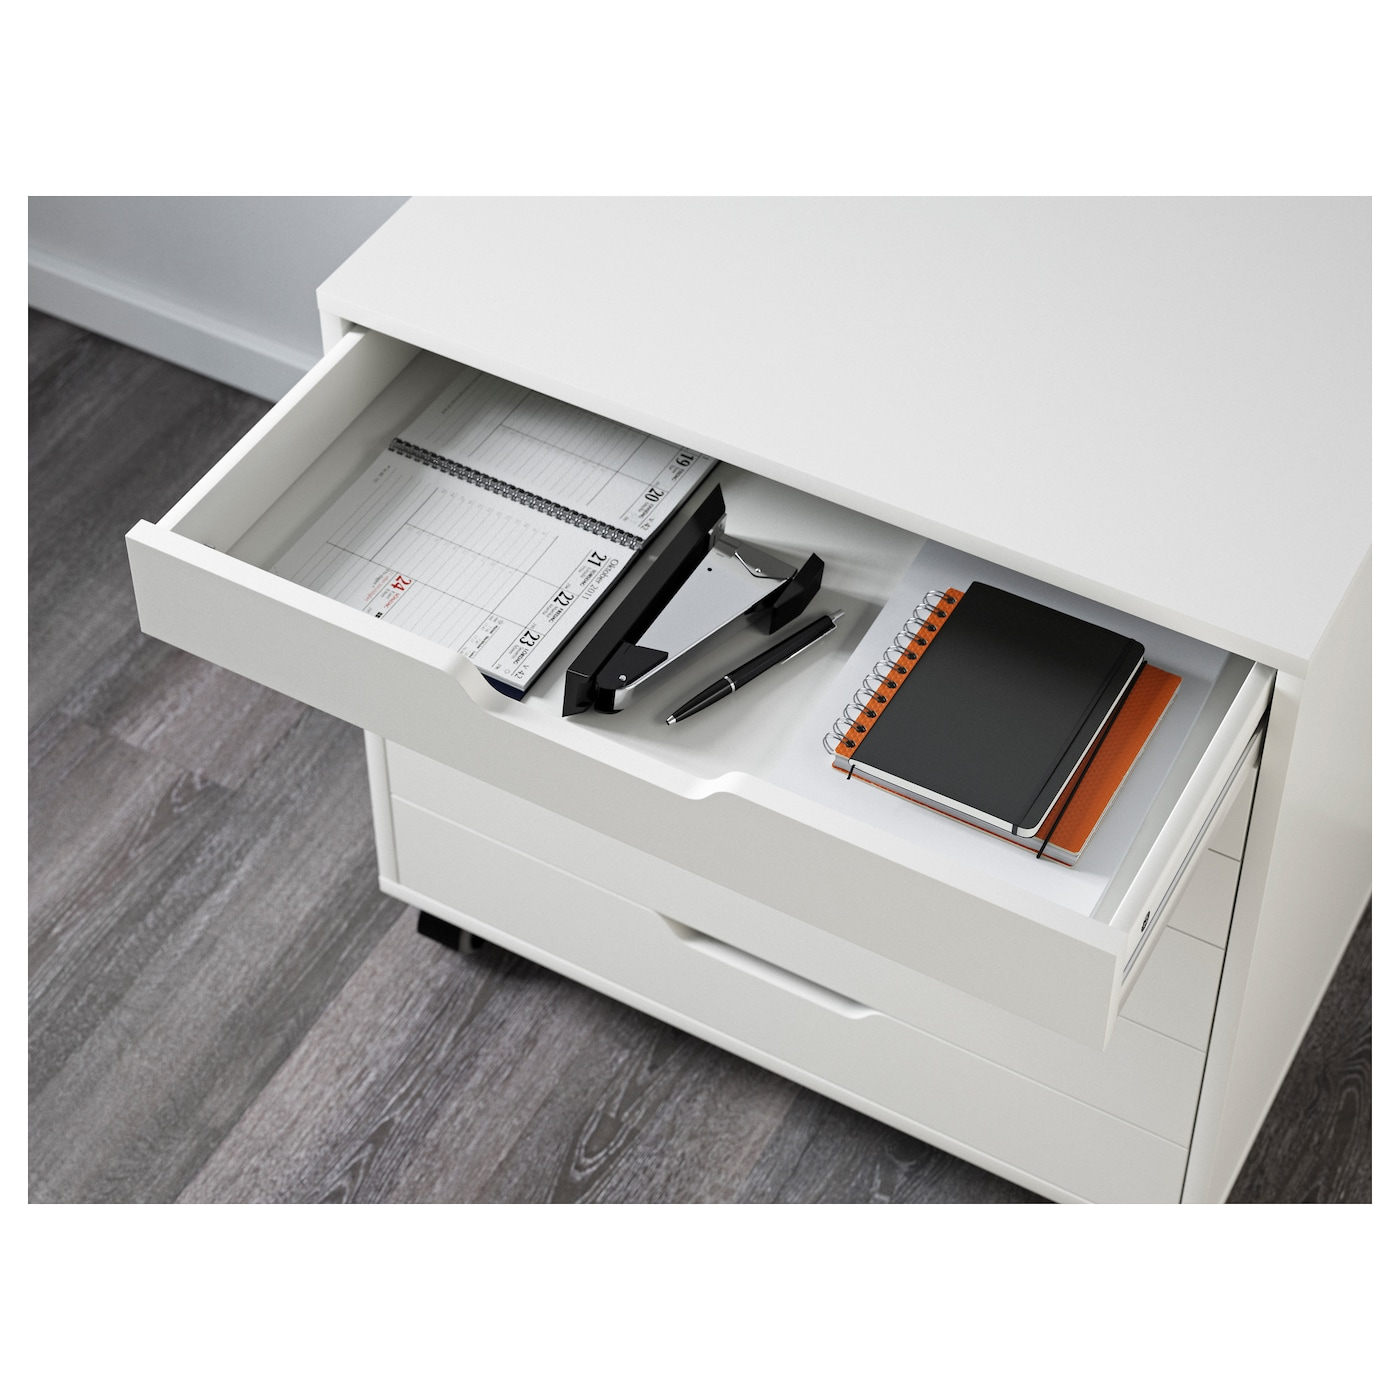 IKEA ALEX drawer unit on castors Drawer stops prevent the drawer from being pulled out too far.